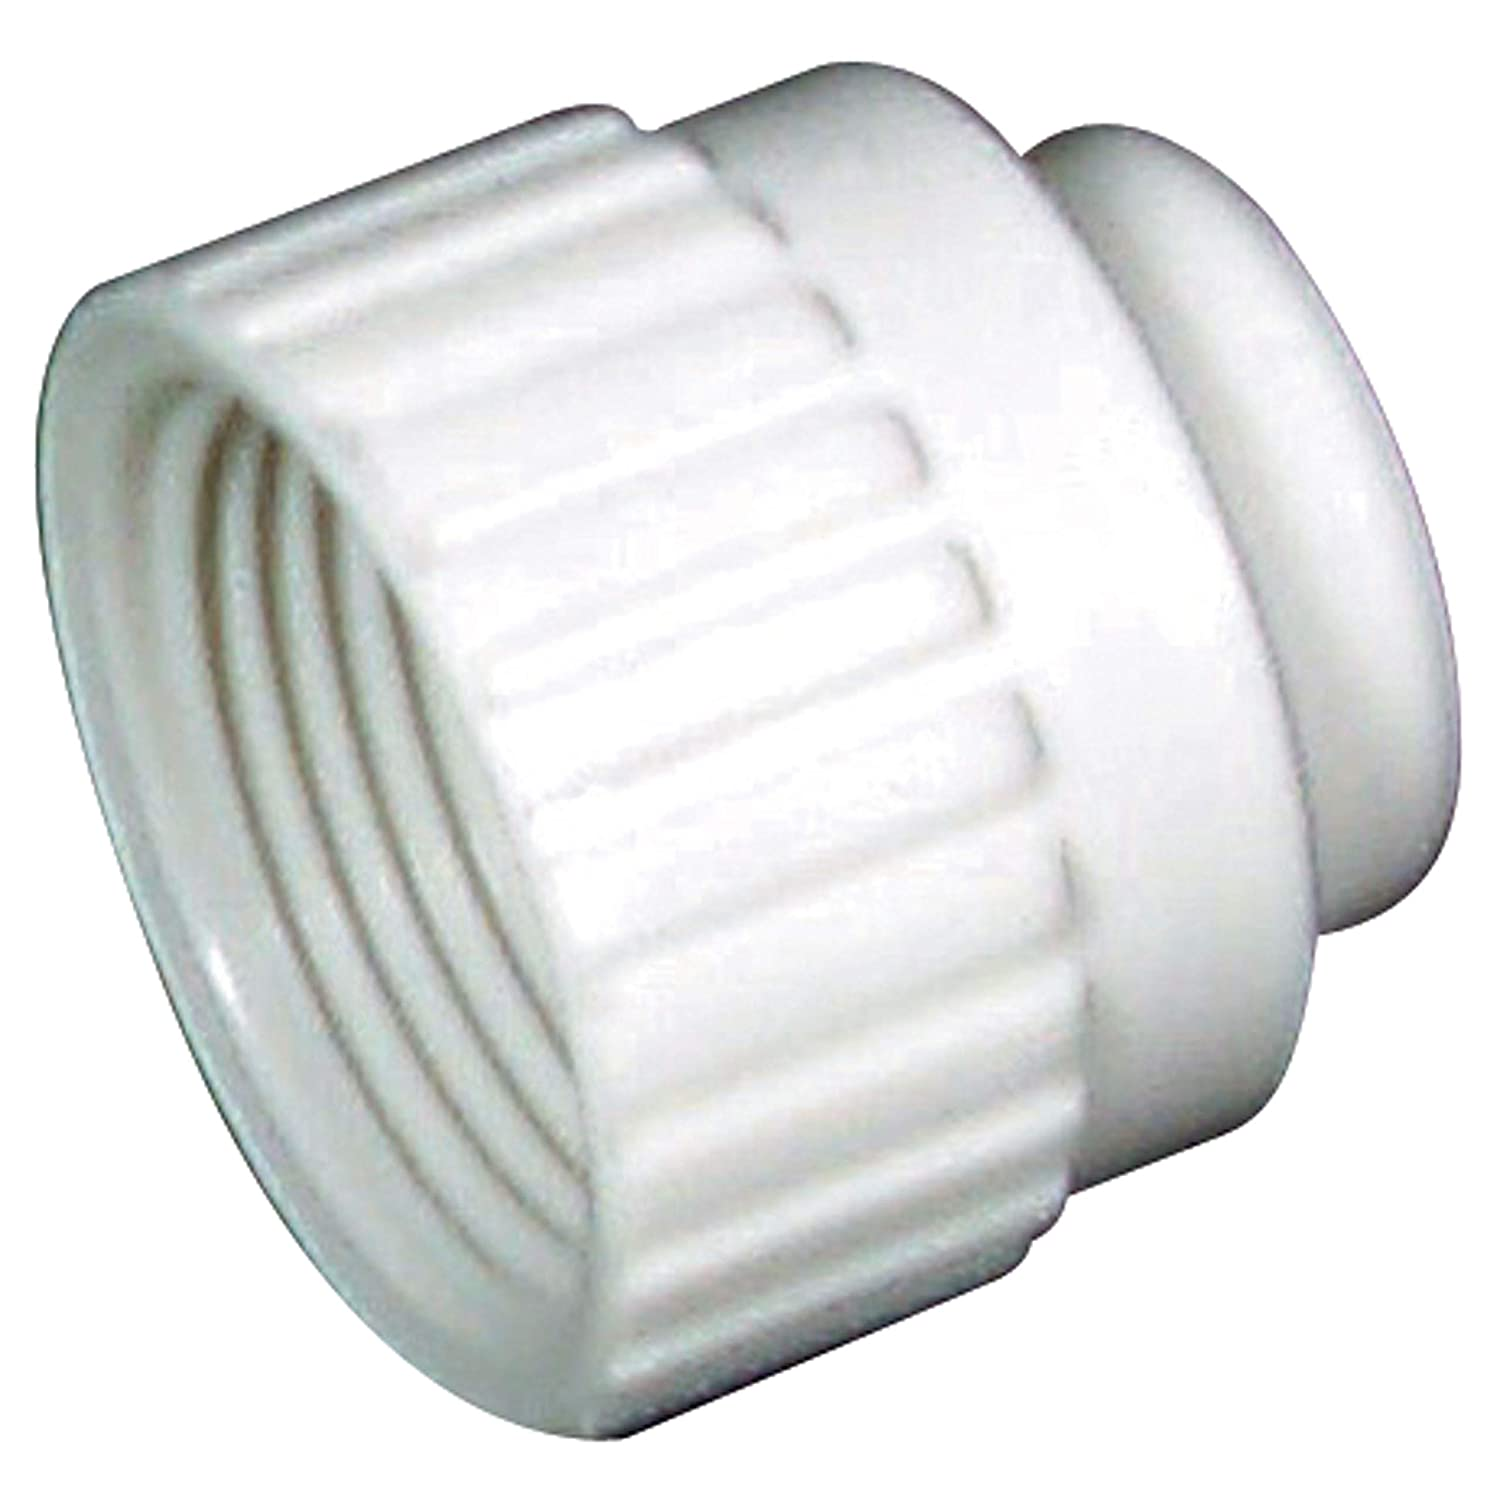 Flair-It 16859 Plastic Cap Fitting, 0.375' Size